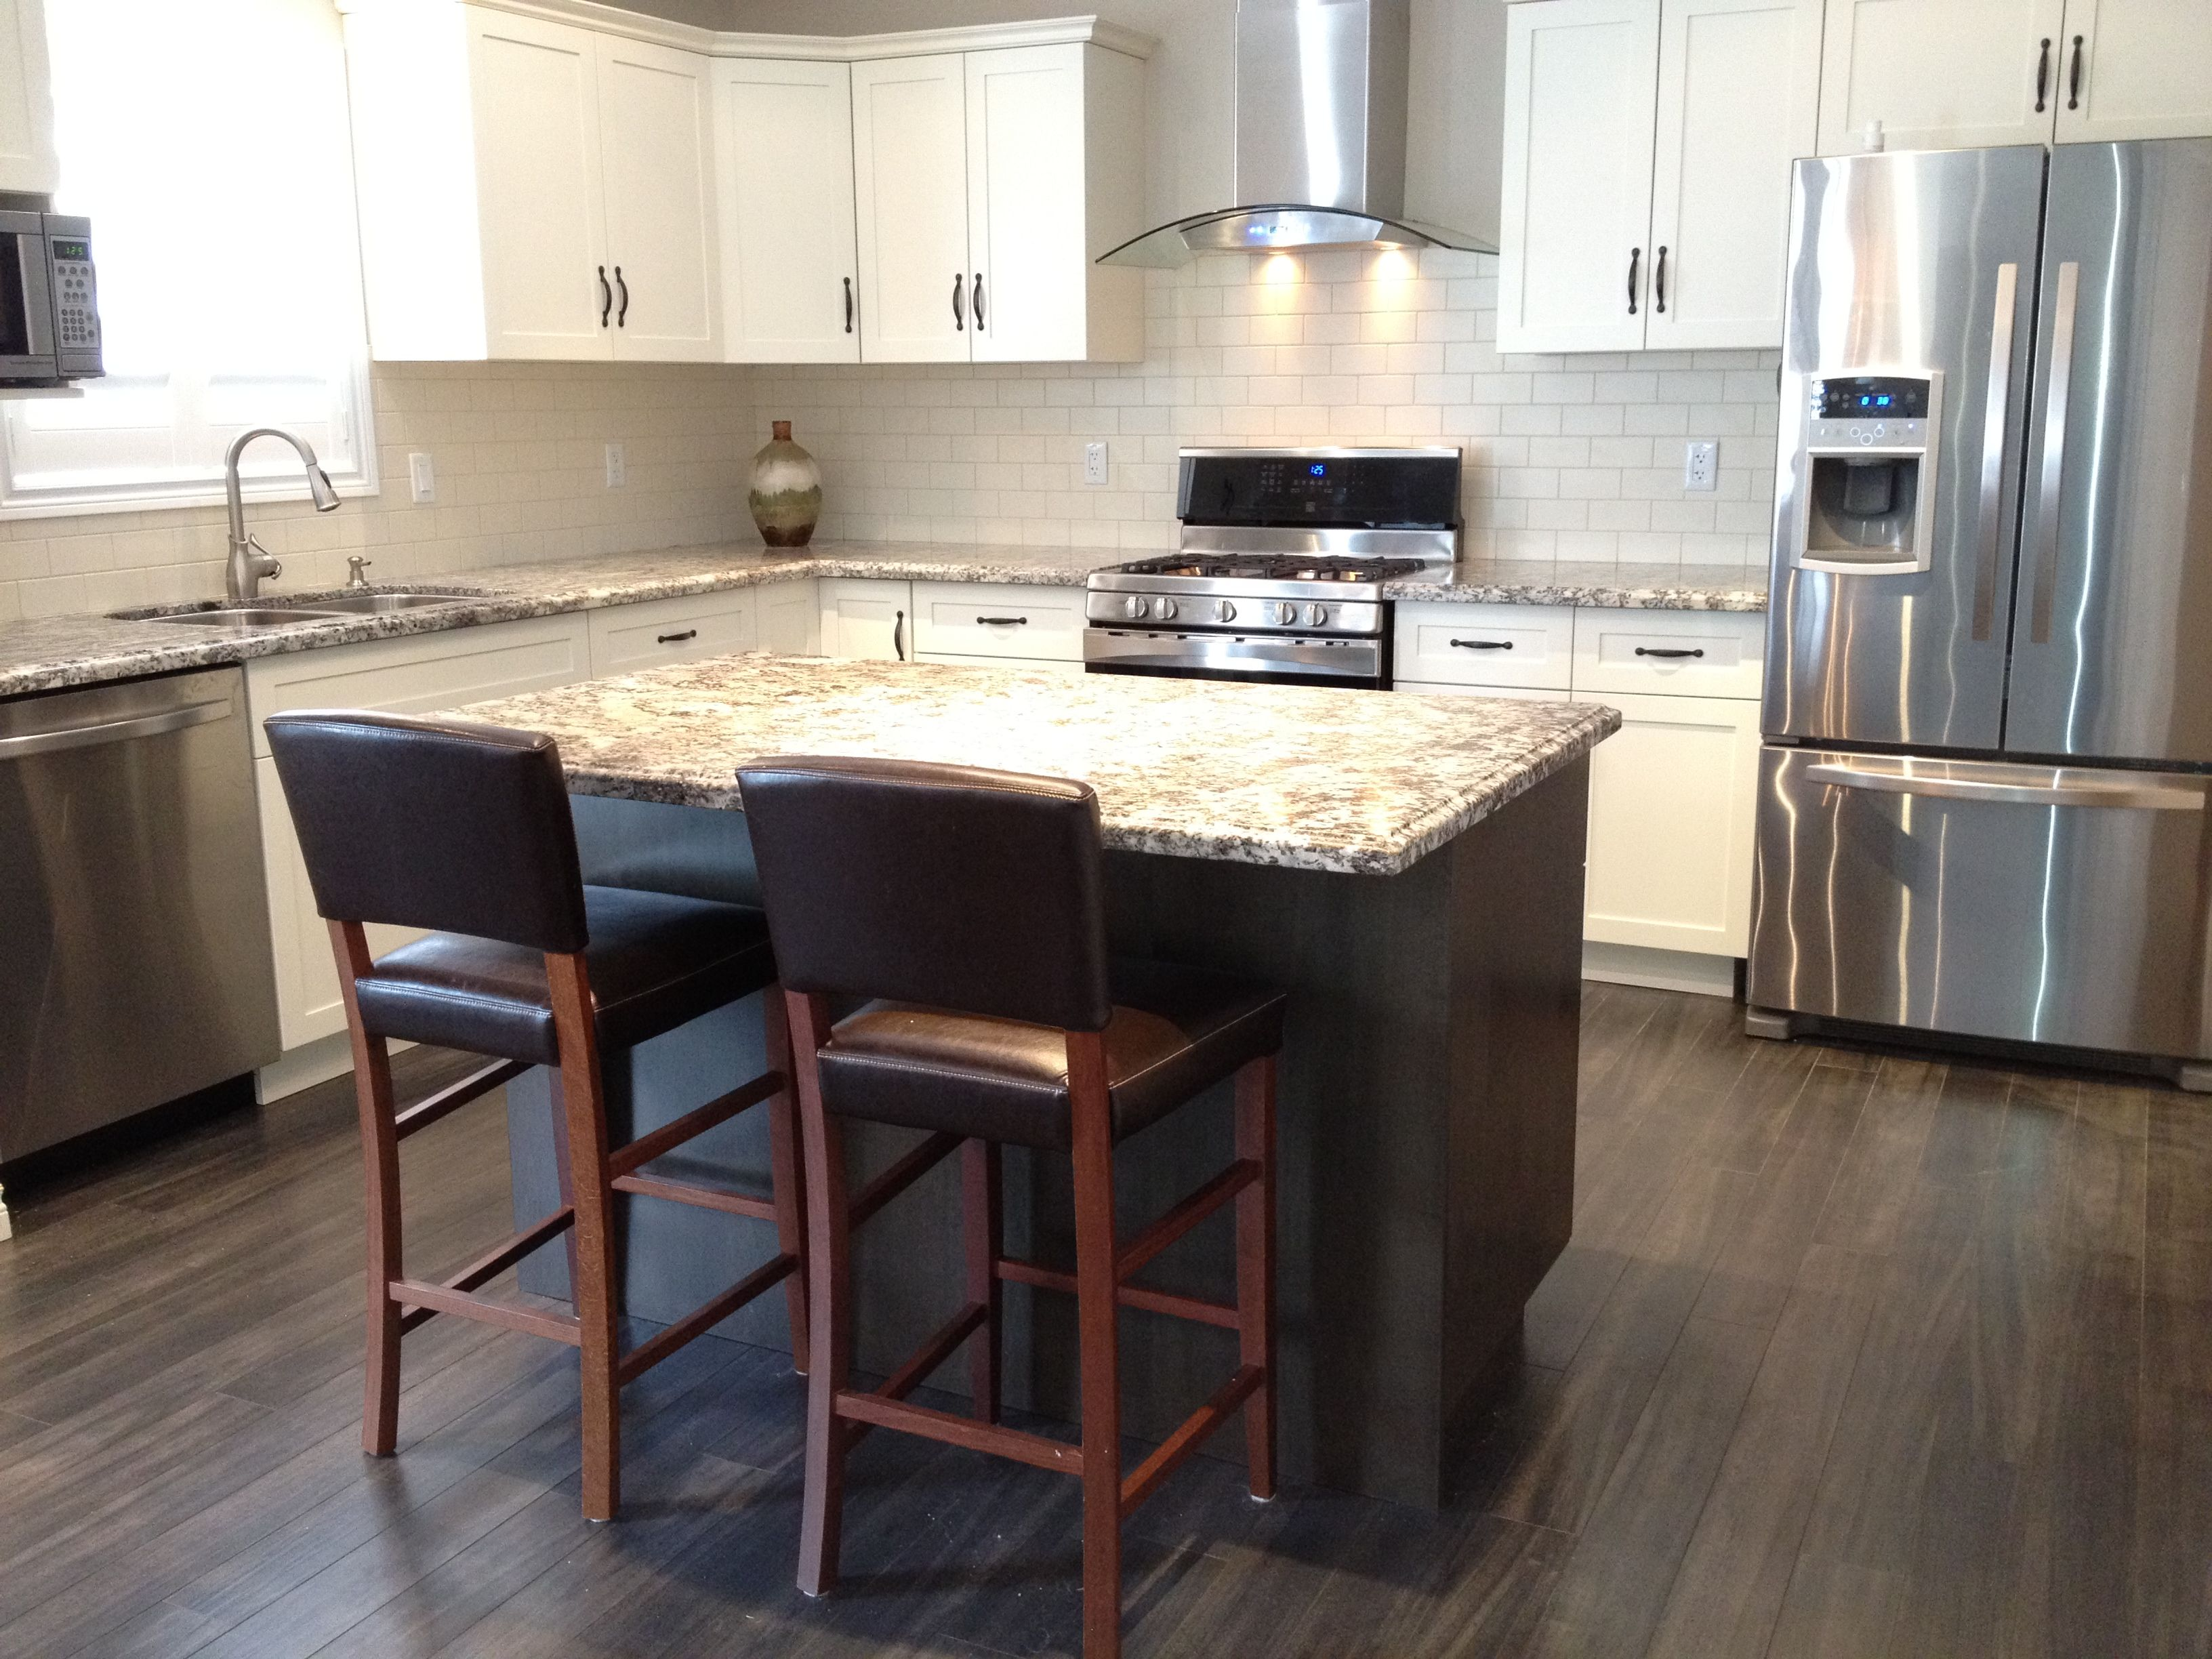 Subway Tile Backsplash White Cabinets Dark Island Backsplash Tile Design Kitchen Remodel Kitchen Design